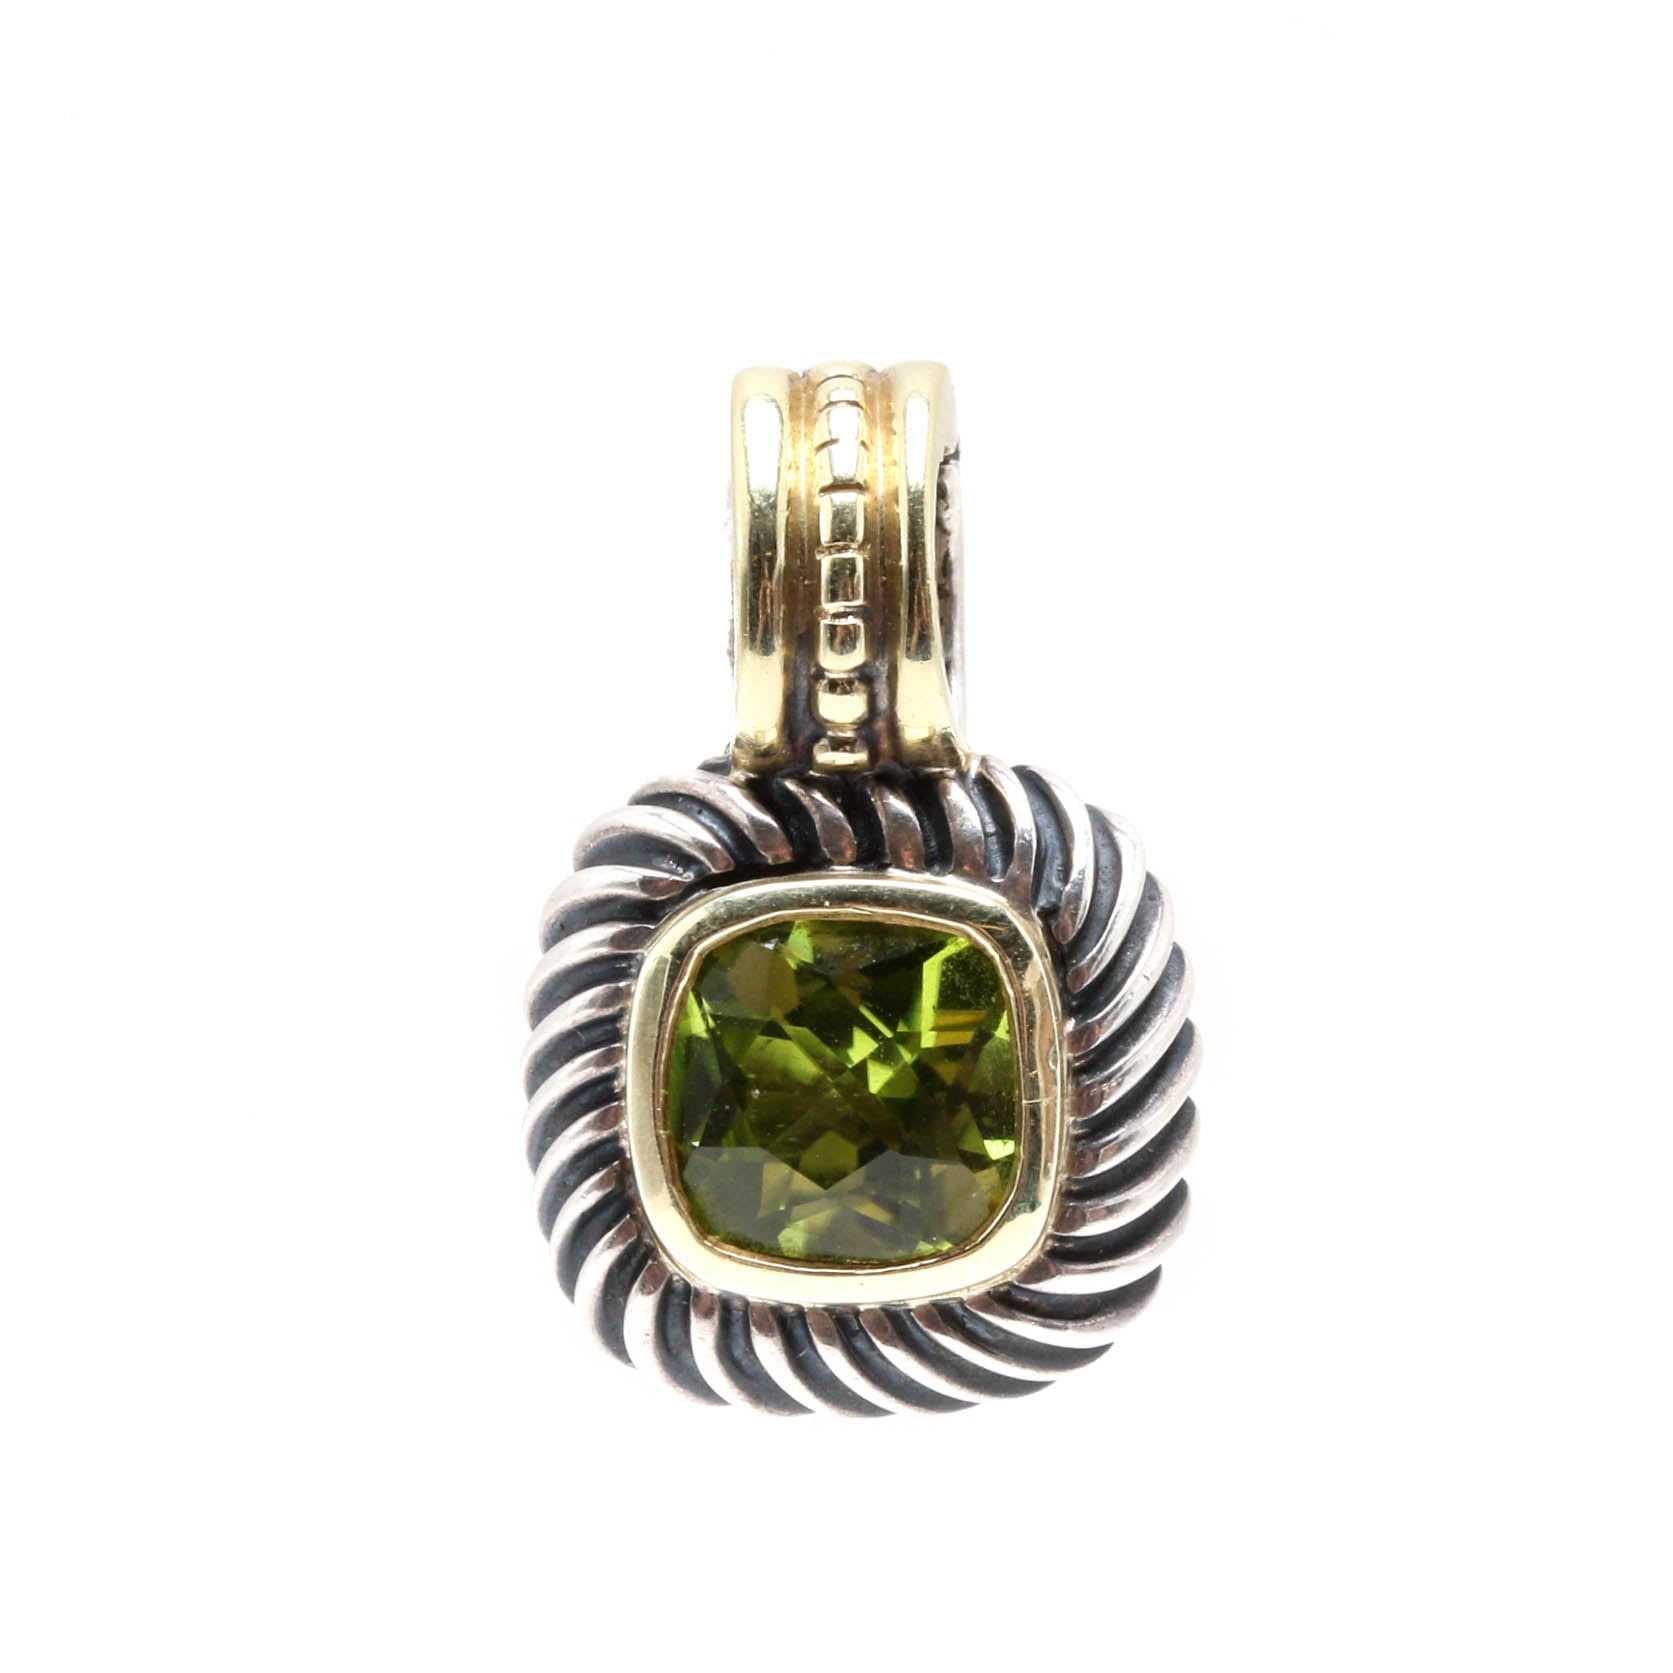 David Yurman Sterling Silver and 14K Yellow Gold Peridot Pendant